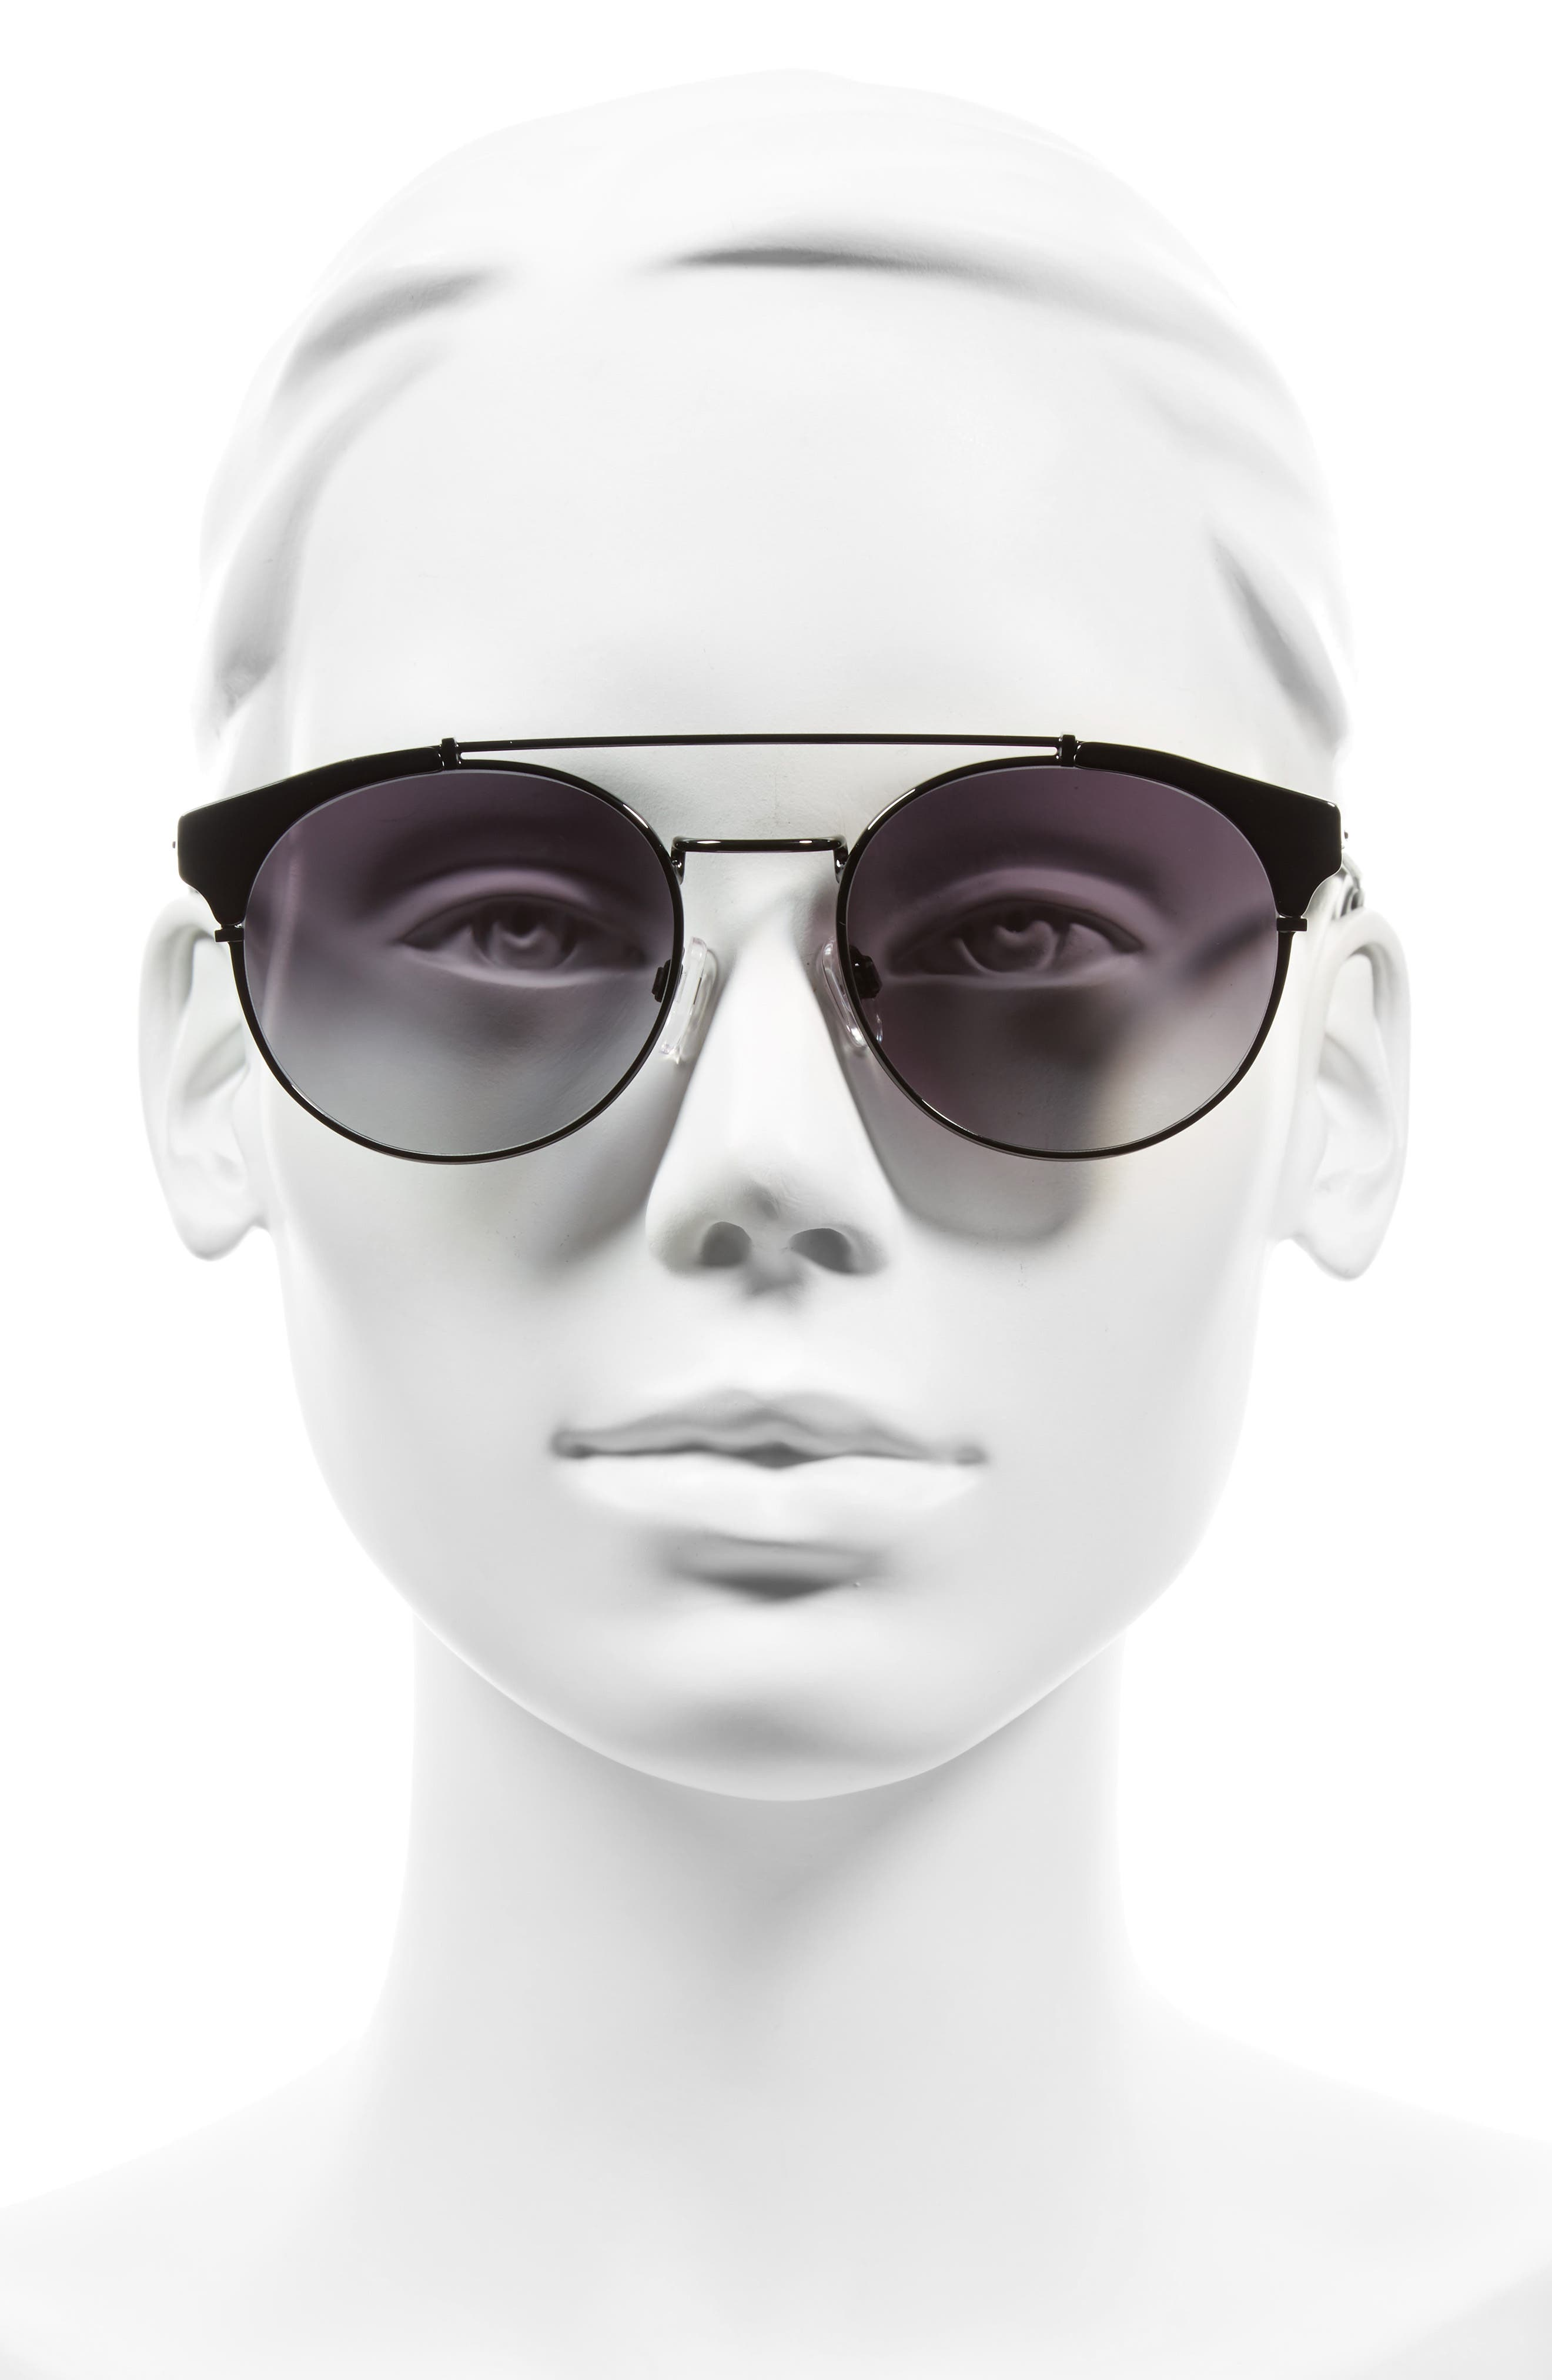 D'BLANC x Amuse Society Dosed Marquis 52mm Gradient Round Aviator Sunglasses,                             Alternate thumbnail 6, color,